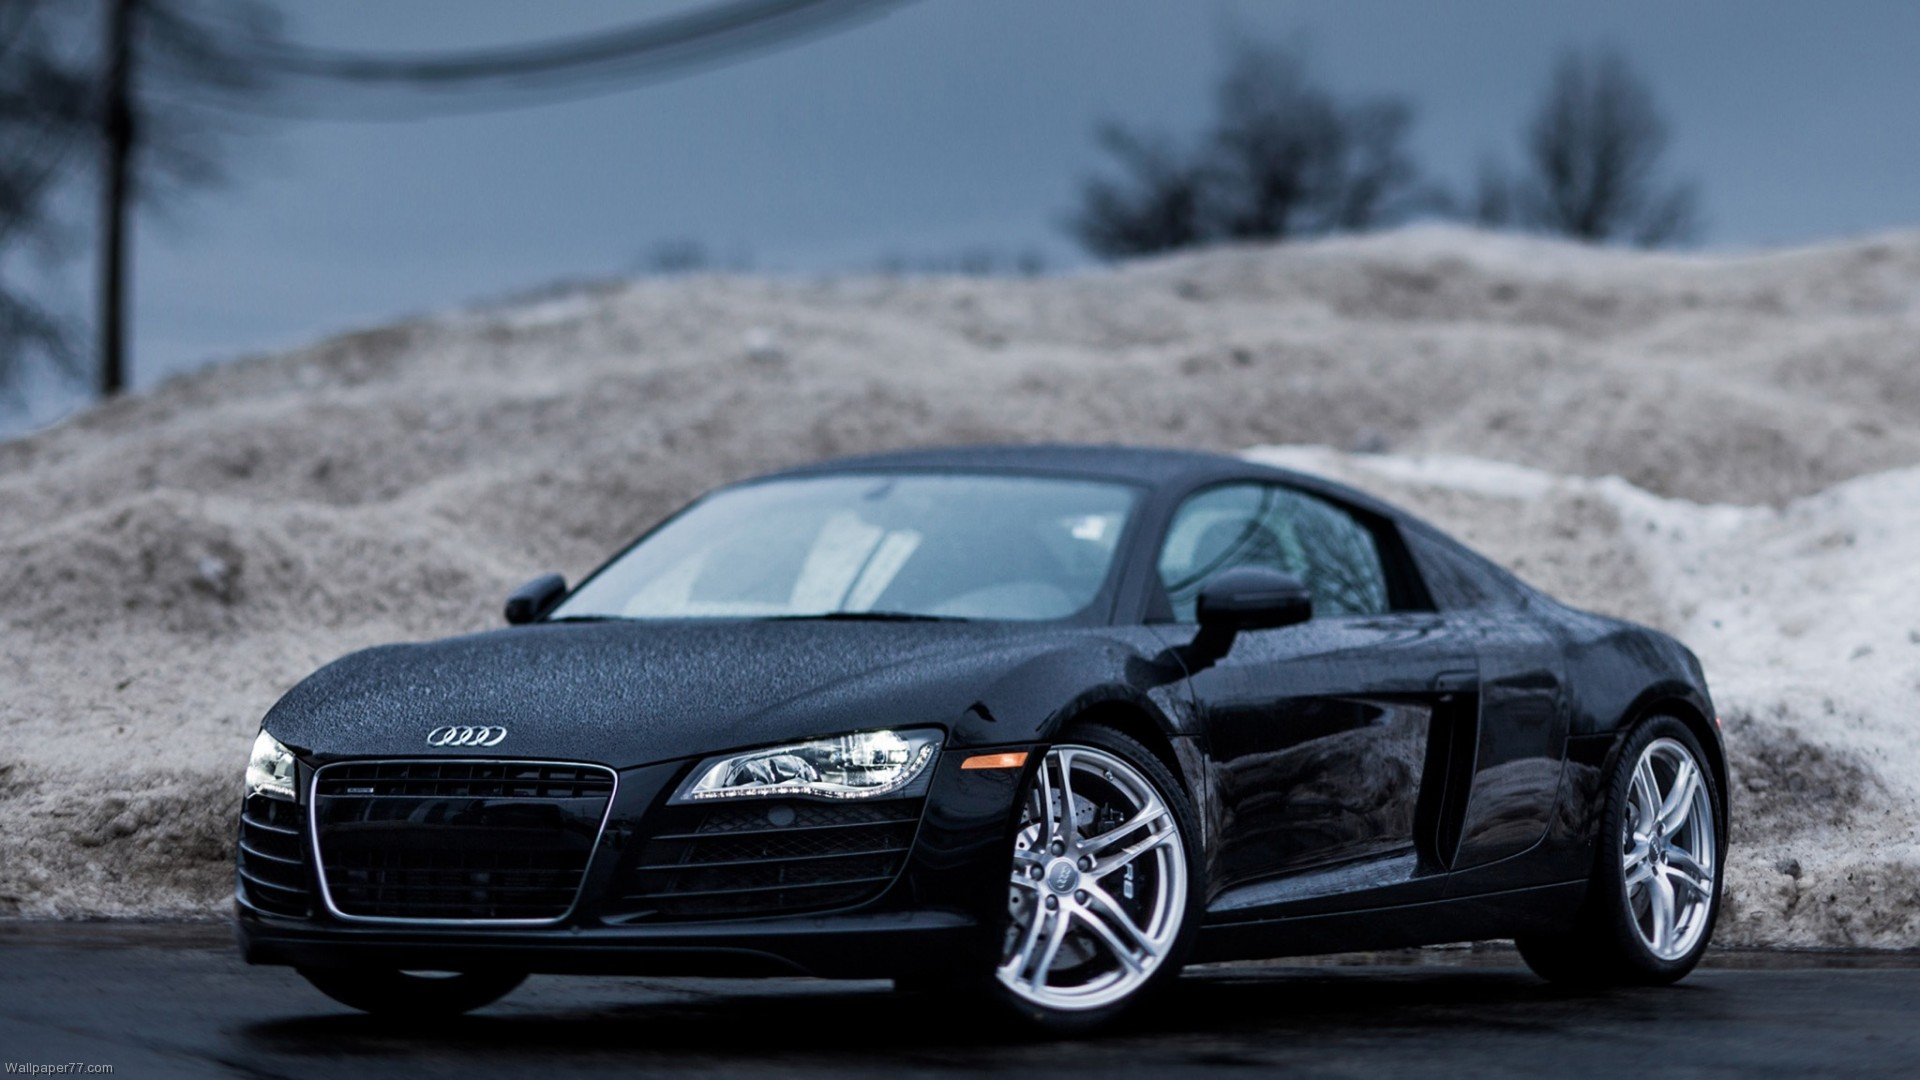 audi tts coupe wallpaper audi cars wallpapers in jpg format for